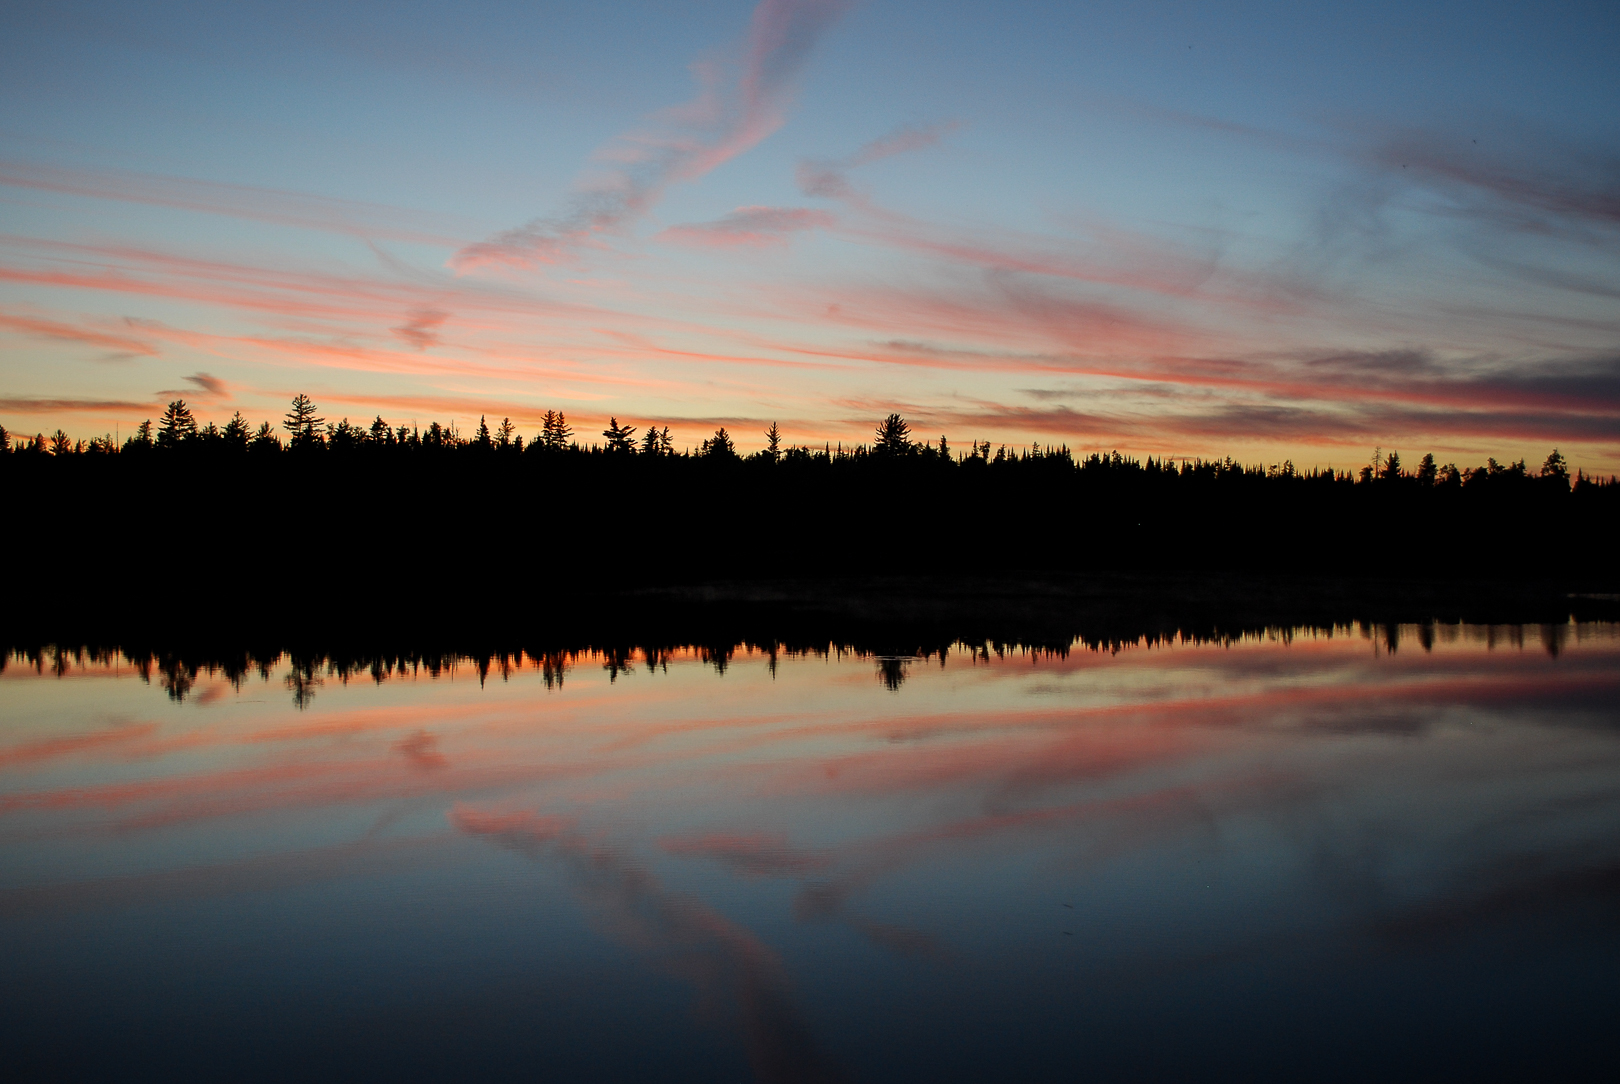 Sunset reflections in the Boundary Waters Canoe Area Wilderness.